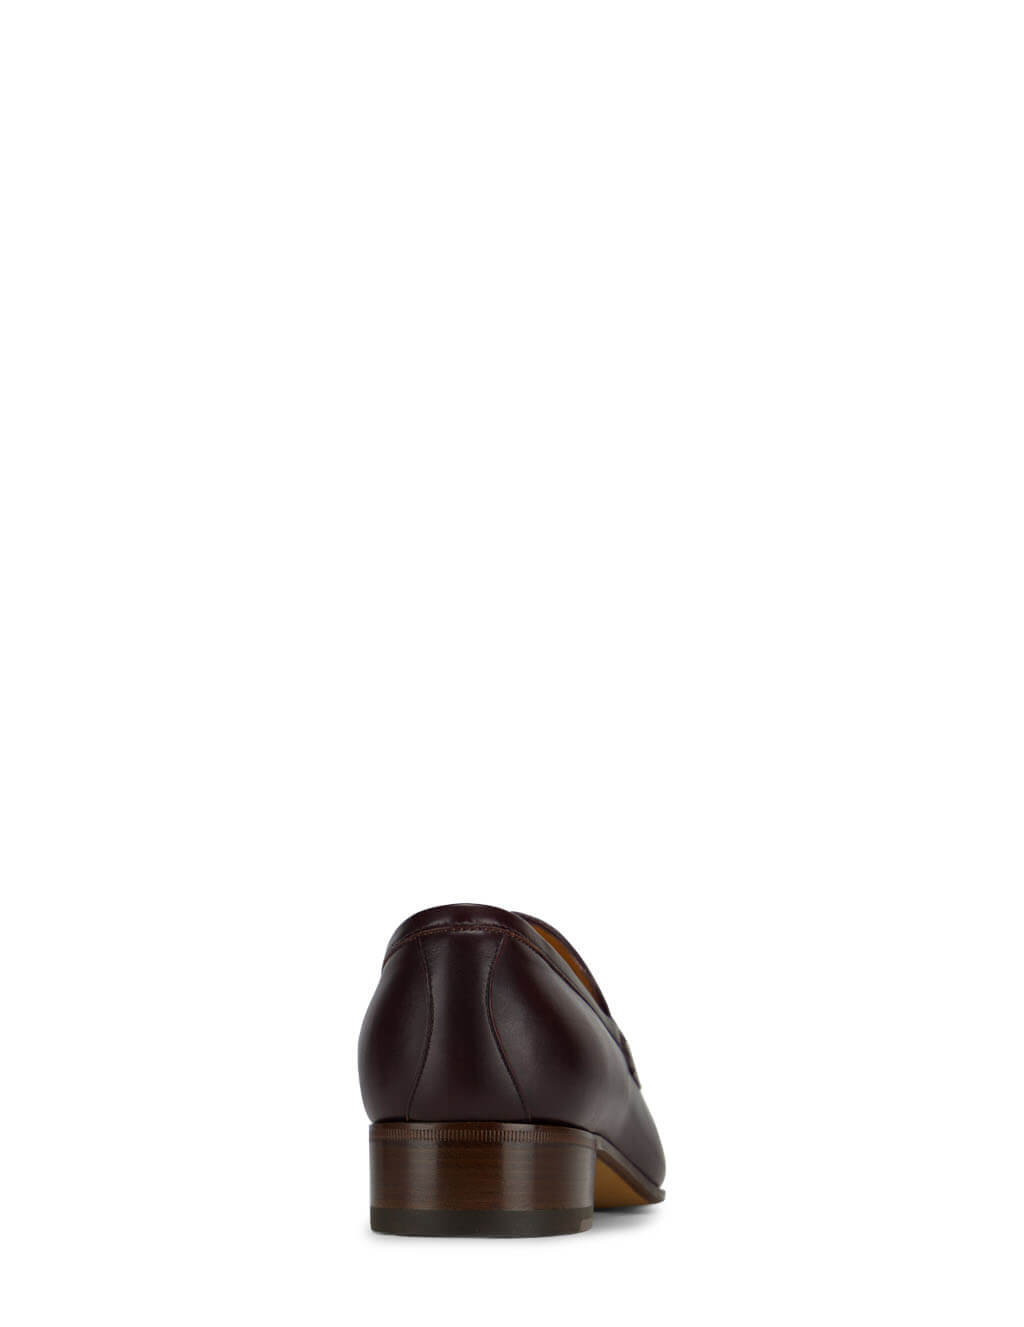 Gucci Men's Burgundy Paride Loafers 624720 1W610 6060